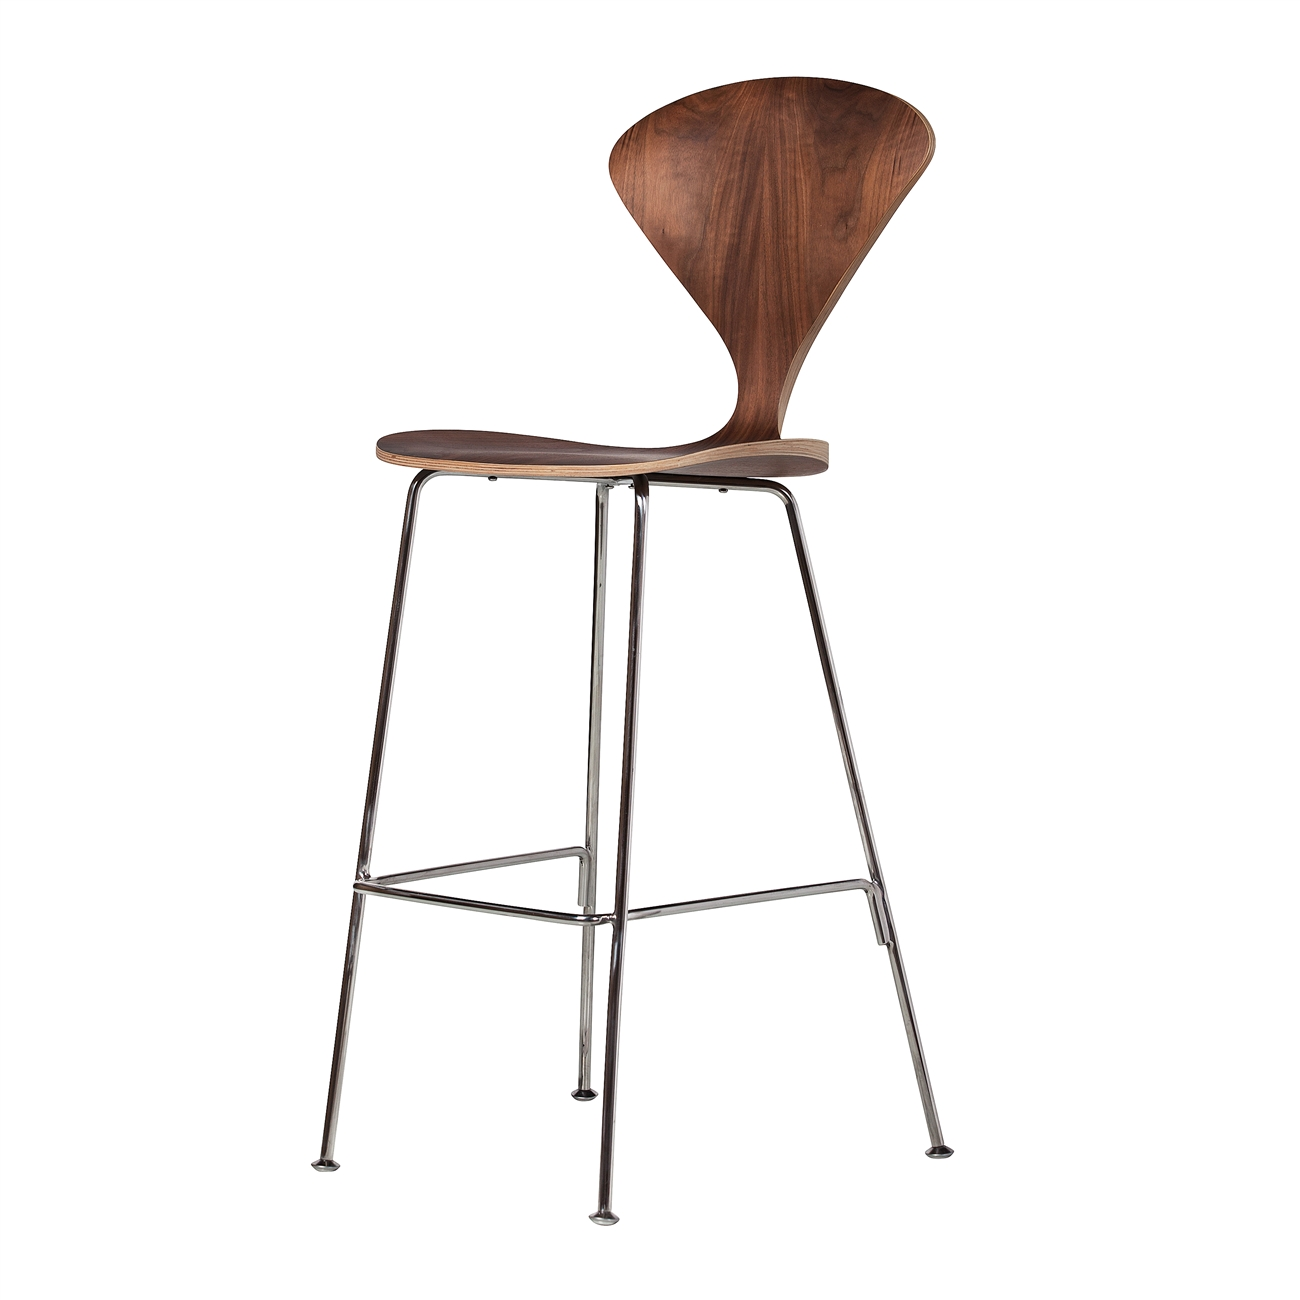 Remarkable Satine Style Counter Stool With Metal Legs Gmtry Best Dining Table And Chair Ideas Images Gmtryco